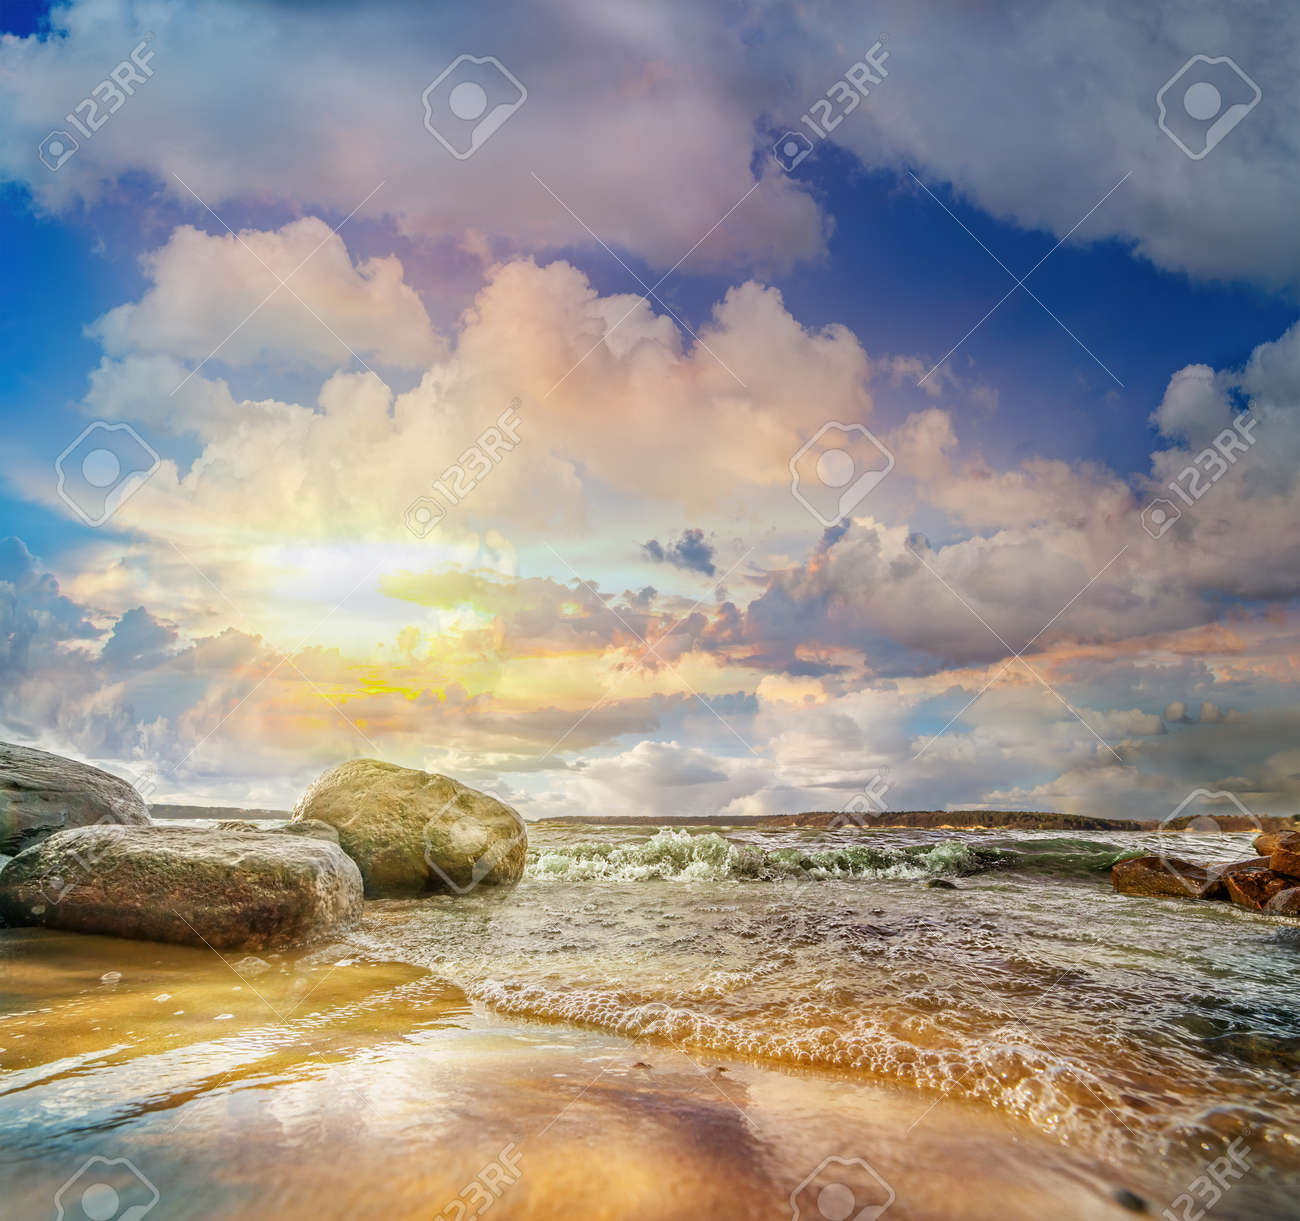 Colorful panoramic landscape with stones and waves at the lake shore on sunset. Lithuania. Kauno marios. - 144922860